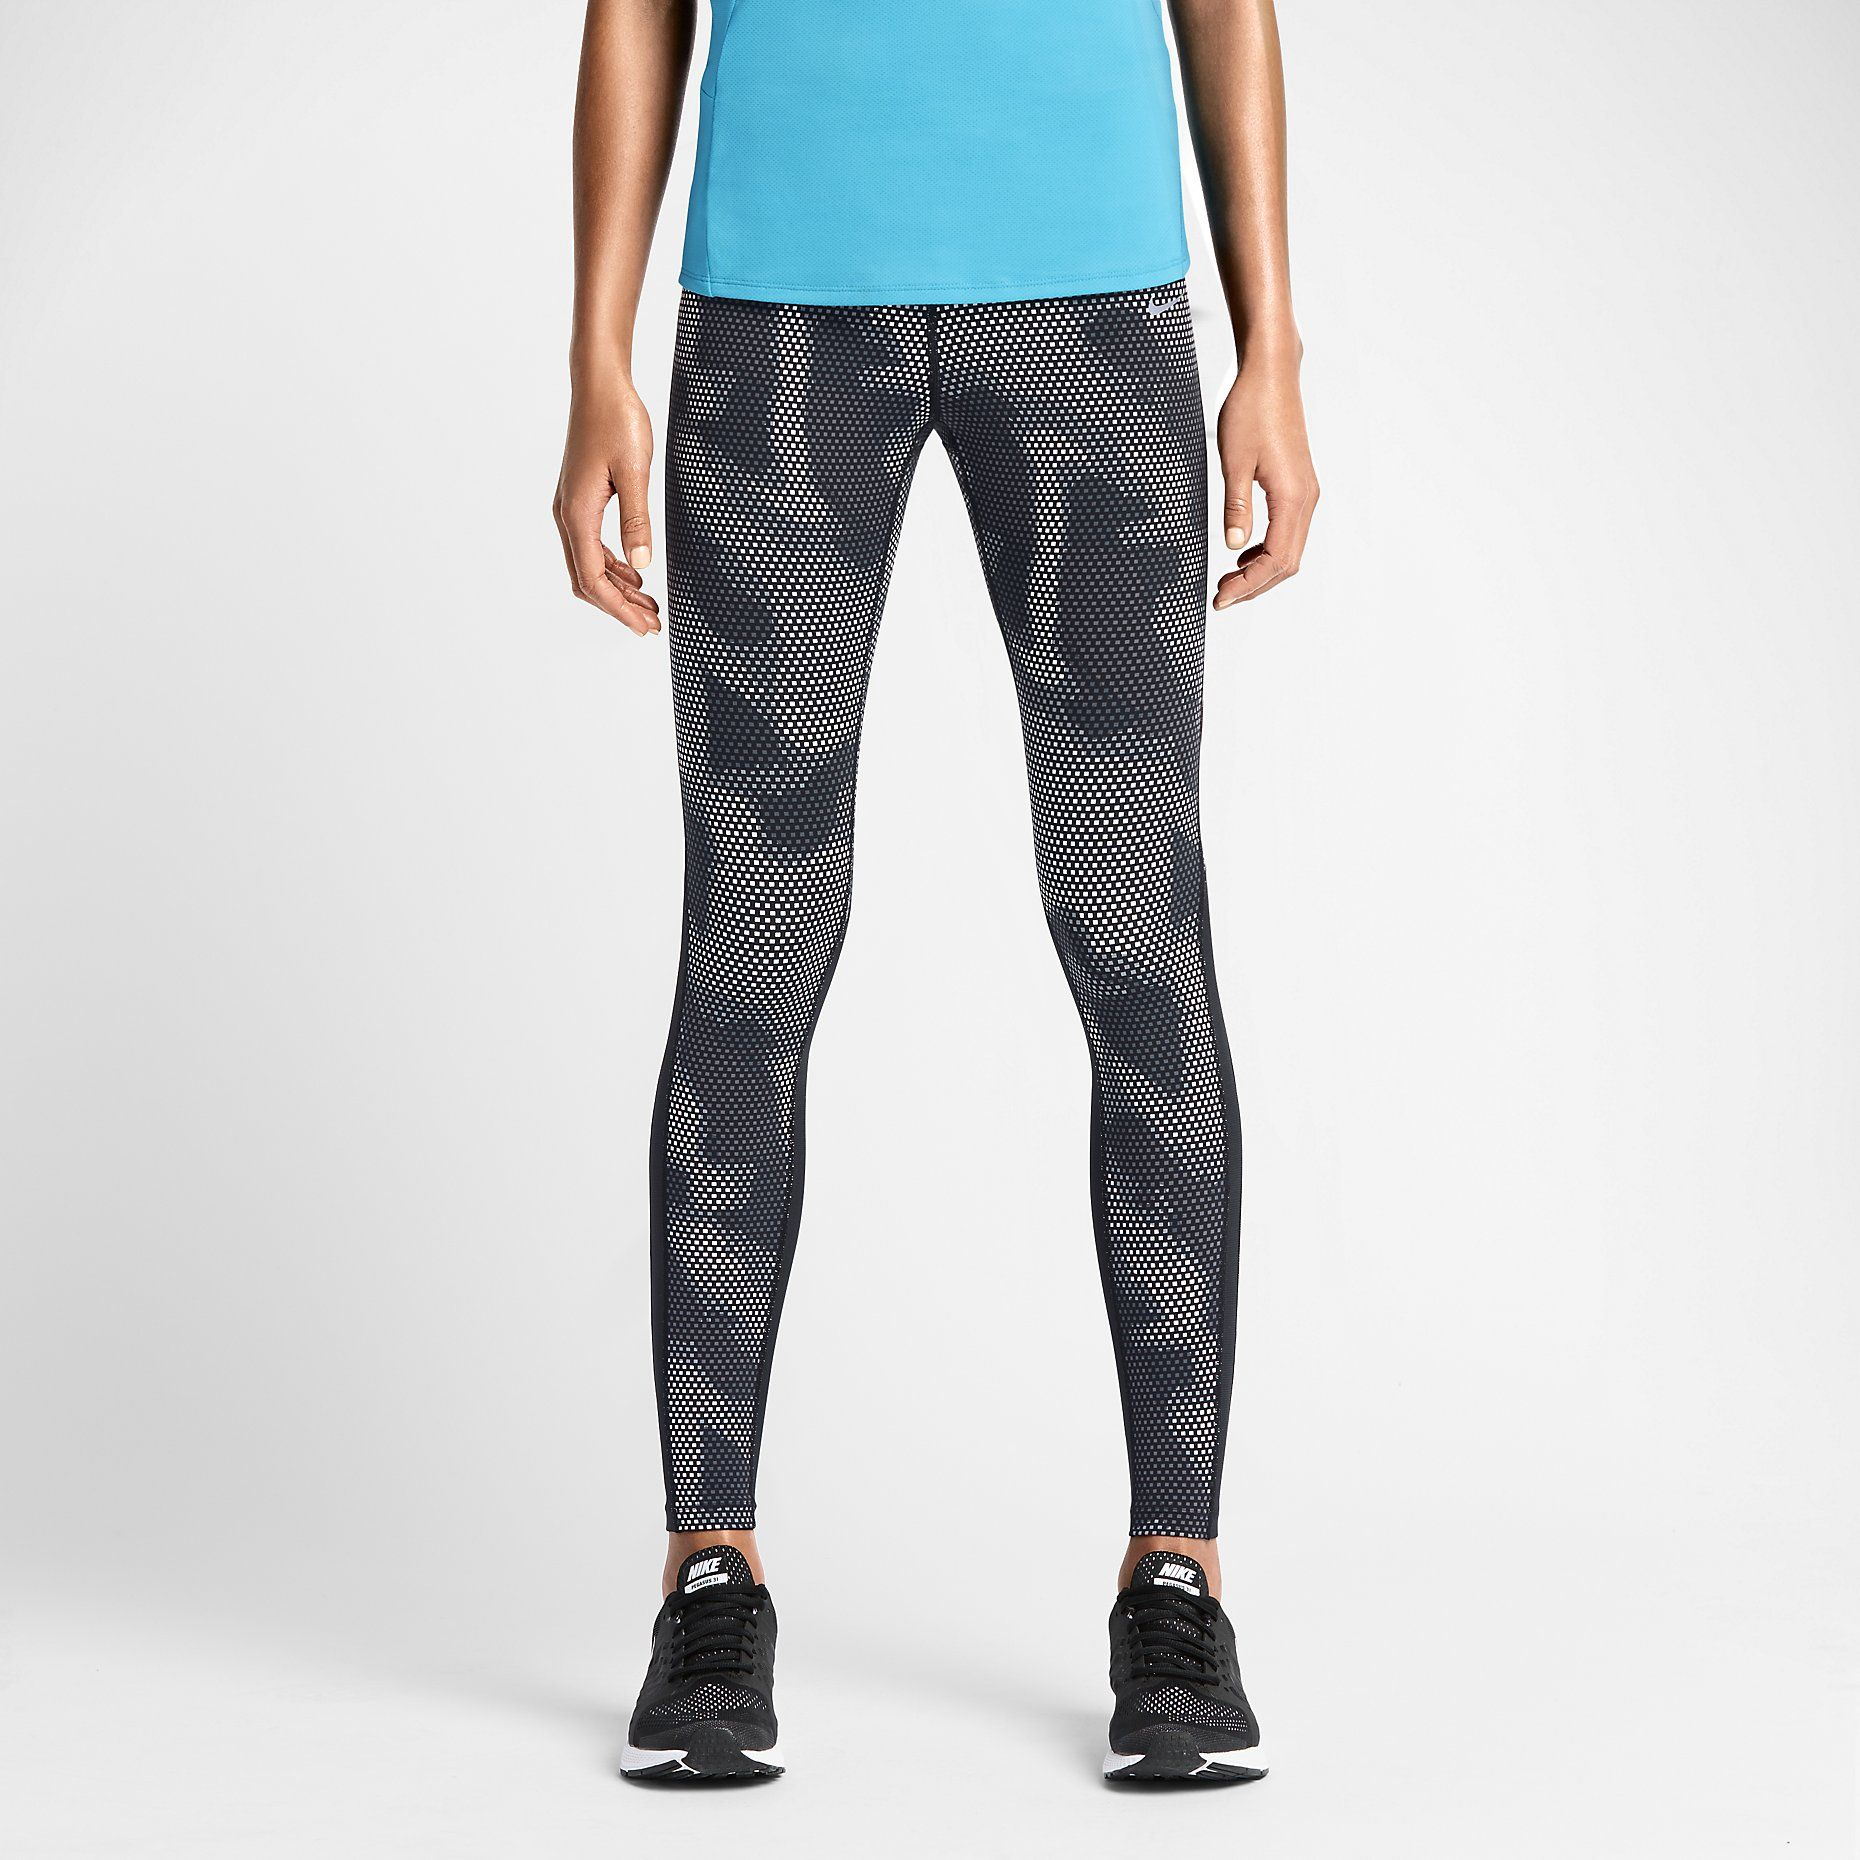 nike epic lux printed women 39 s running tights with sleek. Black Bedroom Furniture Sets. Home Design Ideas